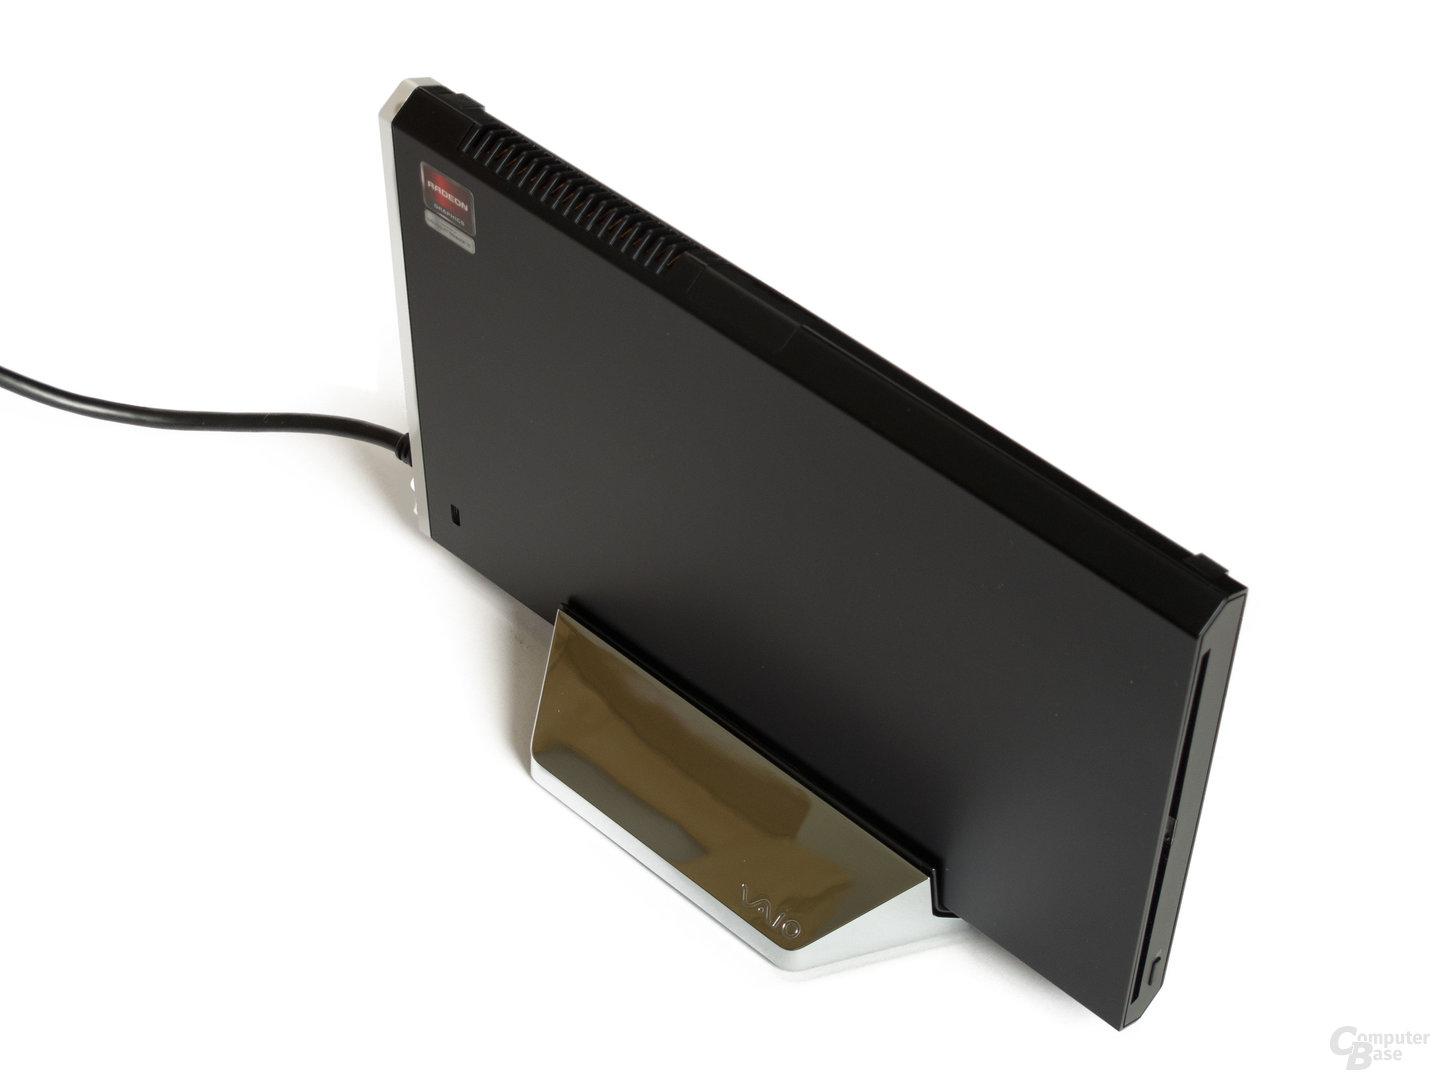 Sony Vaio Z21: Power Dock